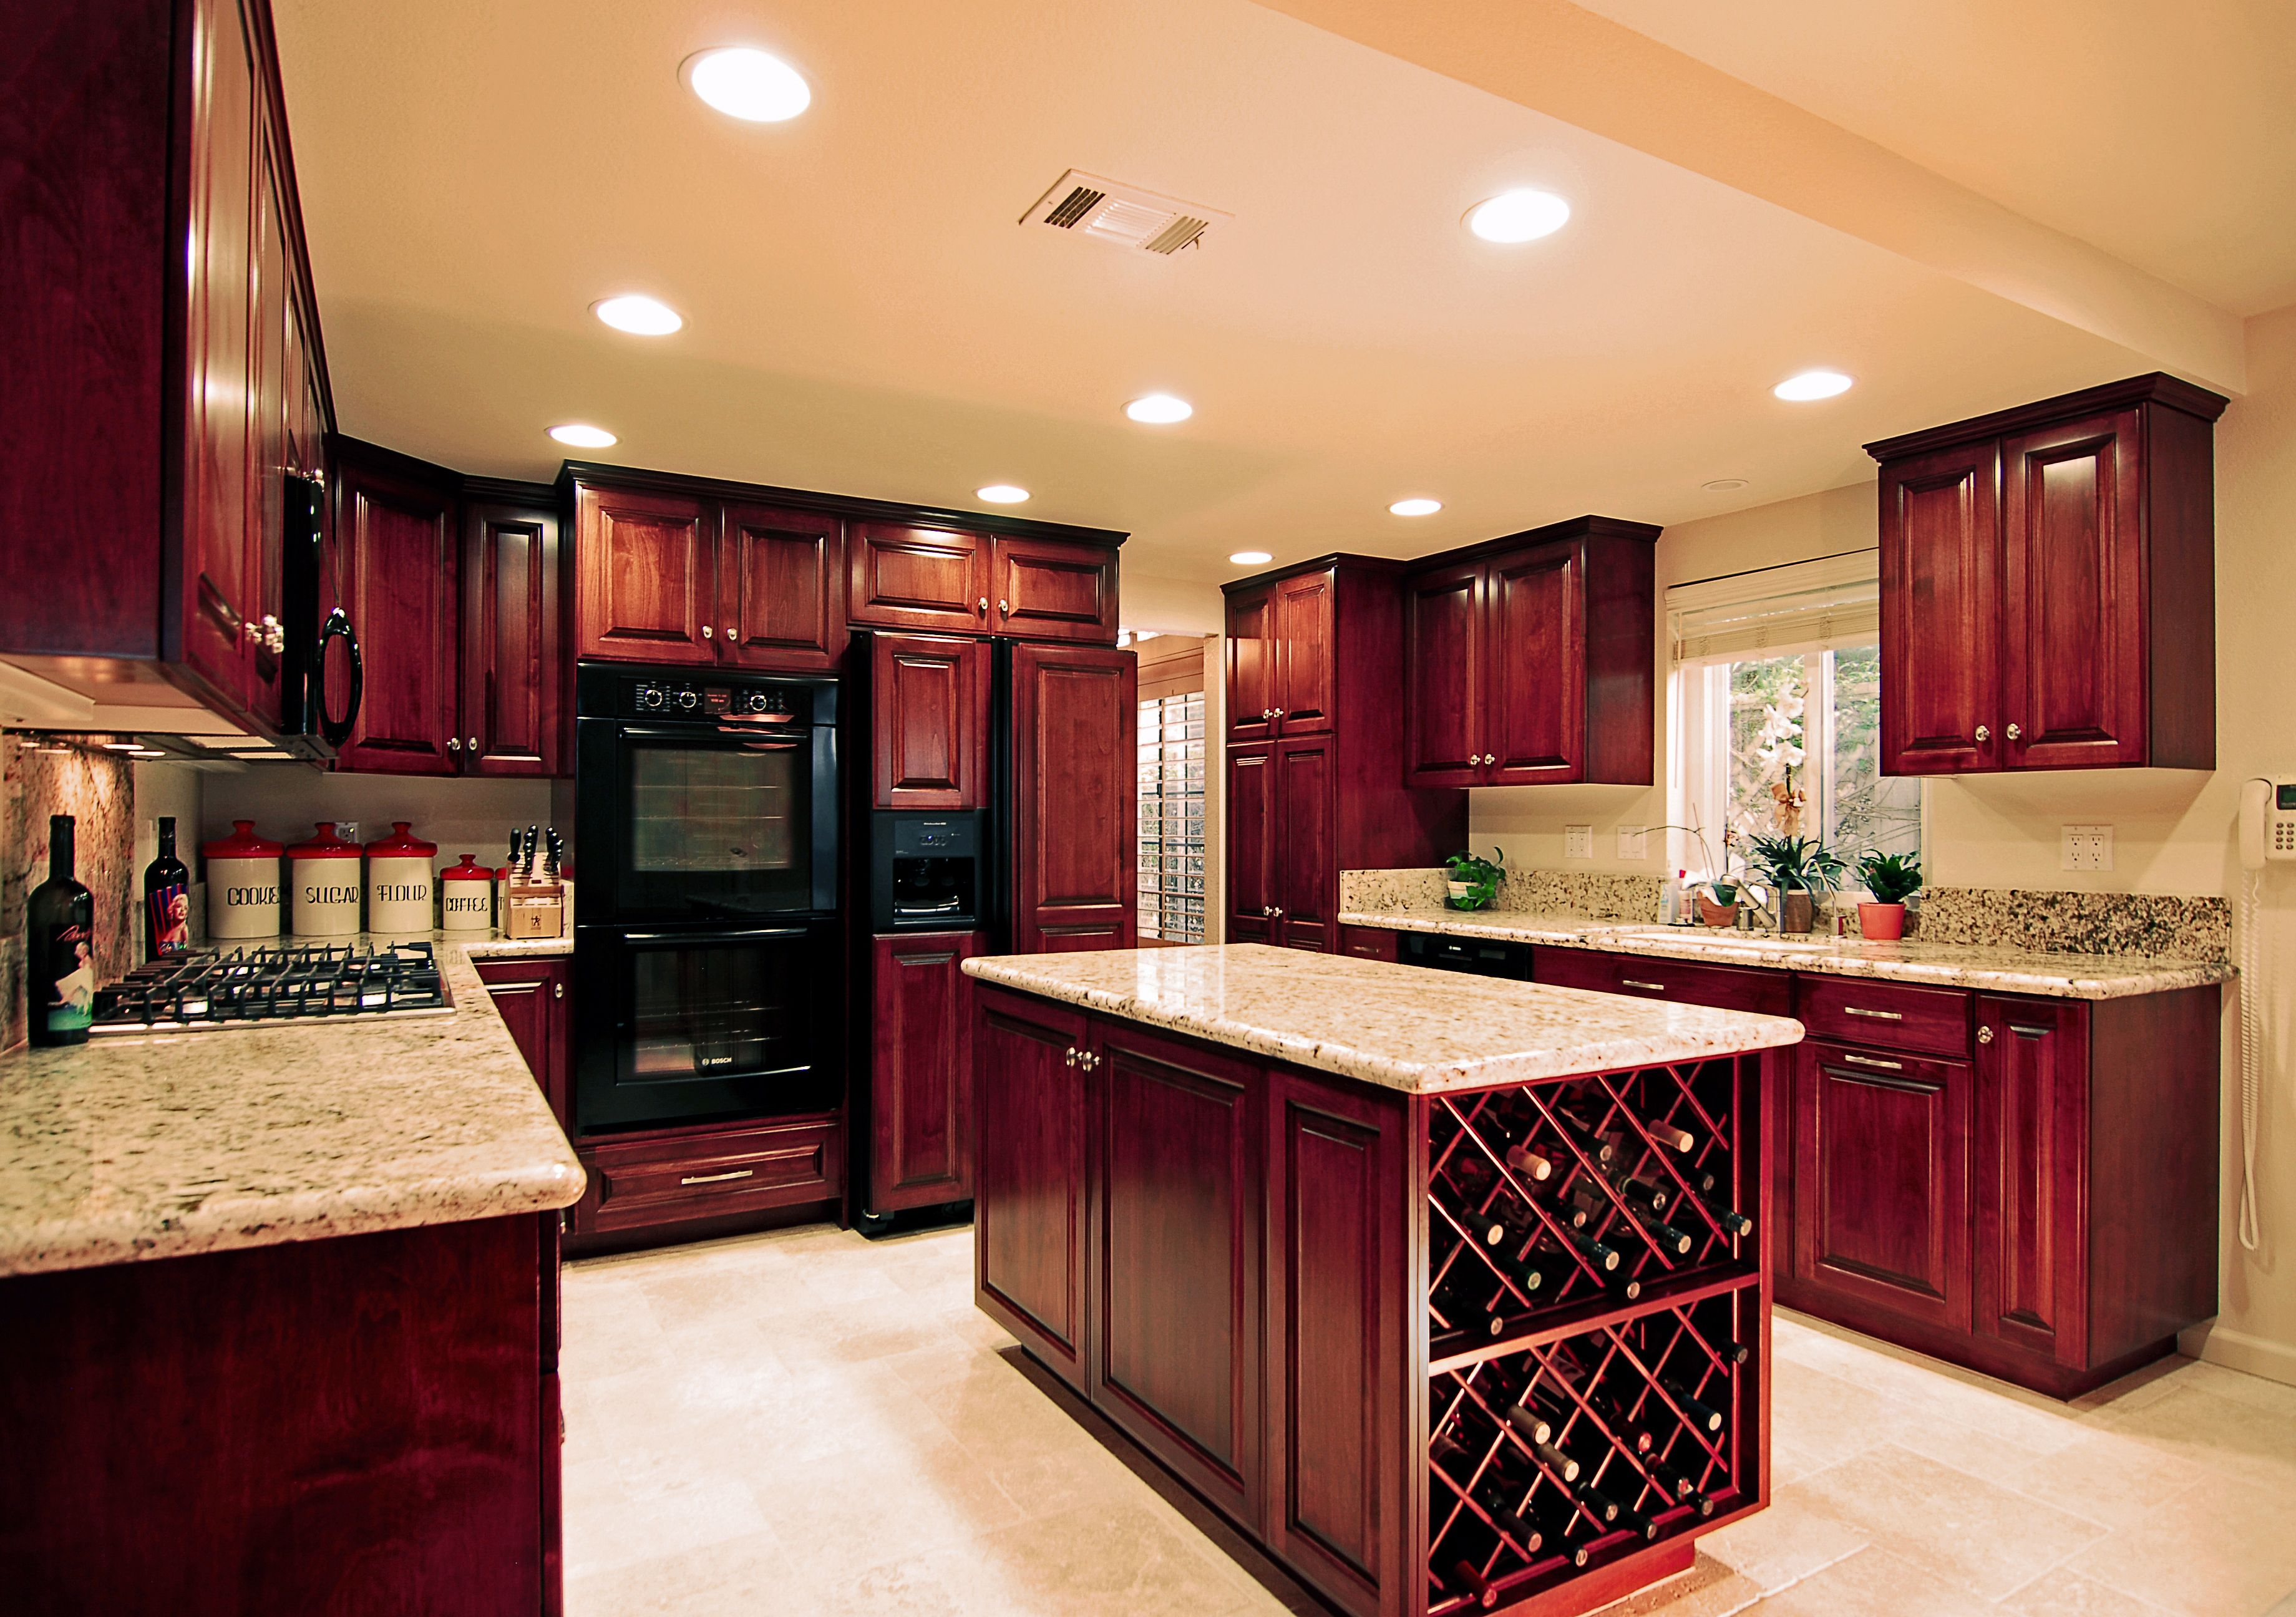 kitchens | Kitchens | Home Remodeling Boot Camp